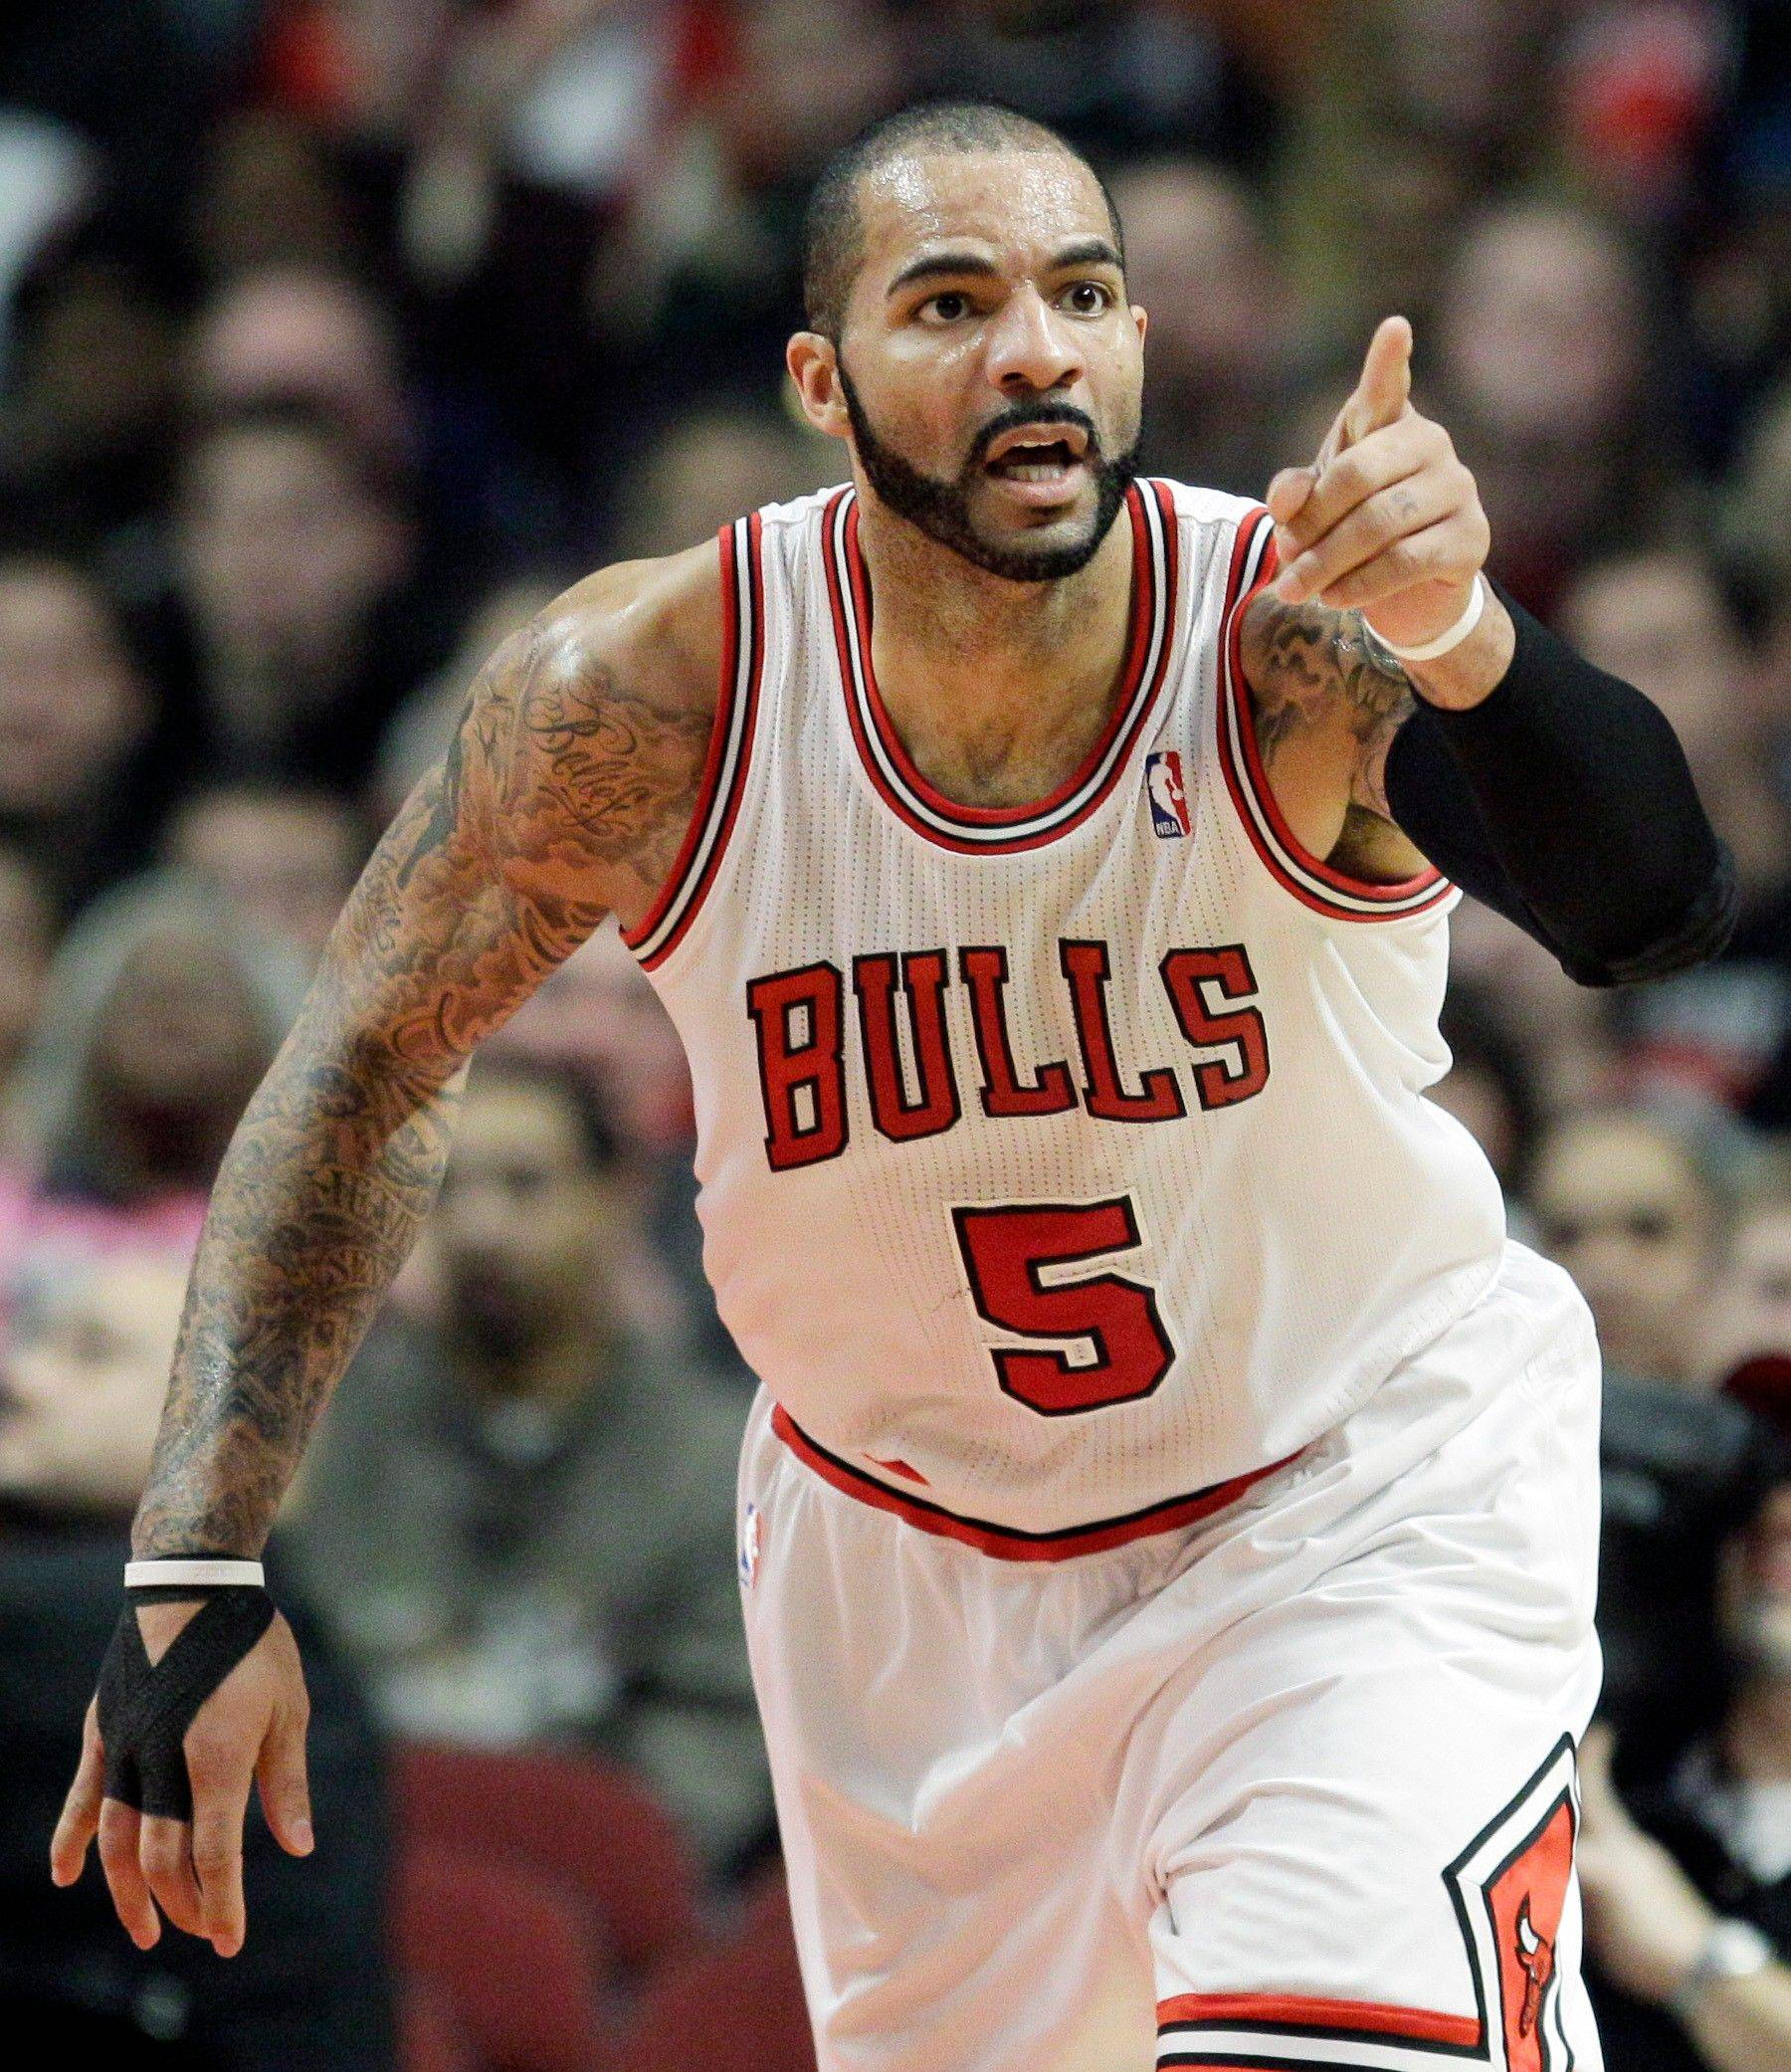 Bulls forward Carlos Boozer reacts Saturday after scoring a basket during the first quarter.